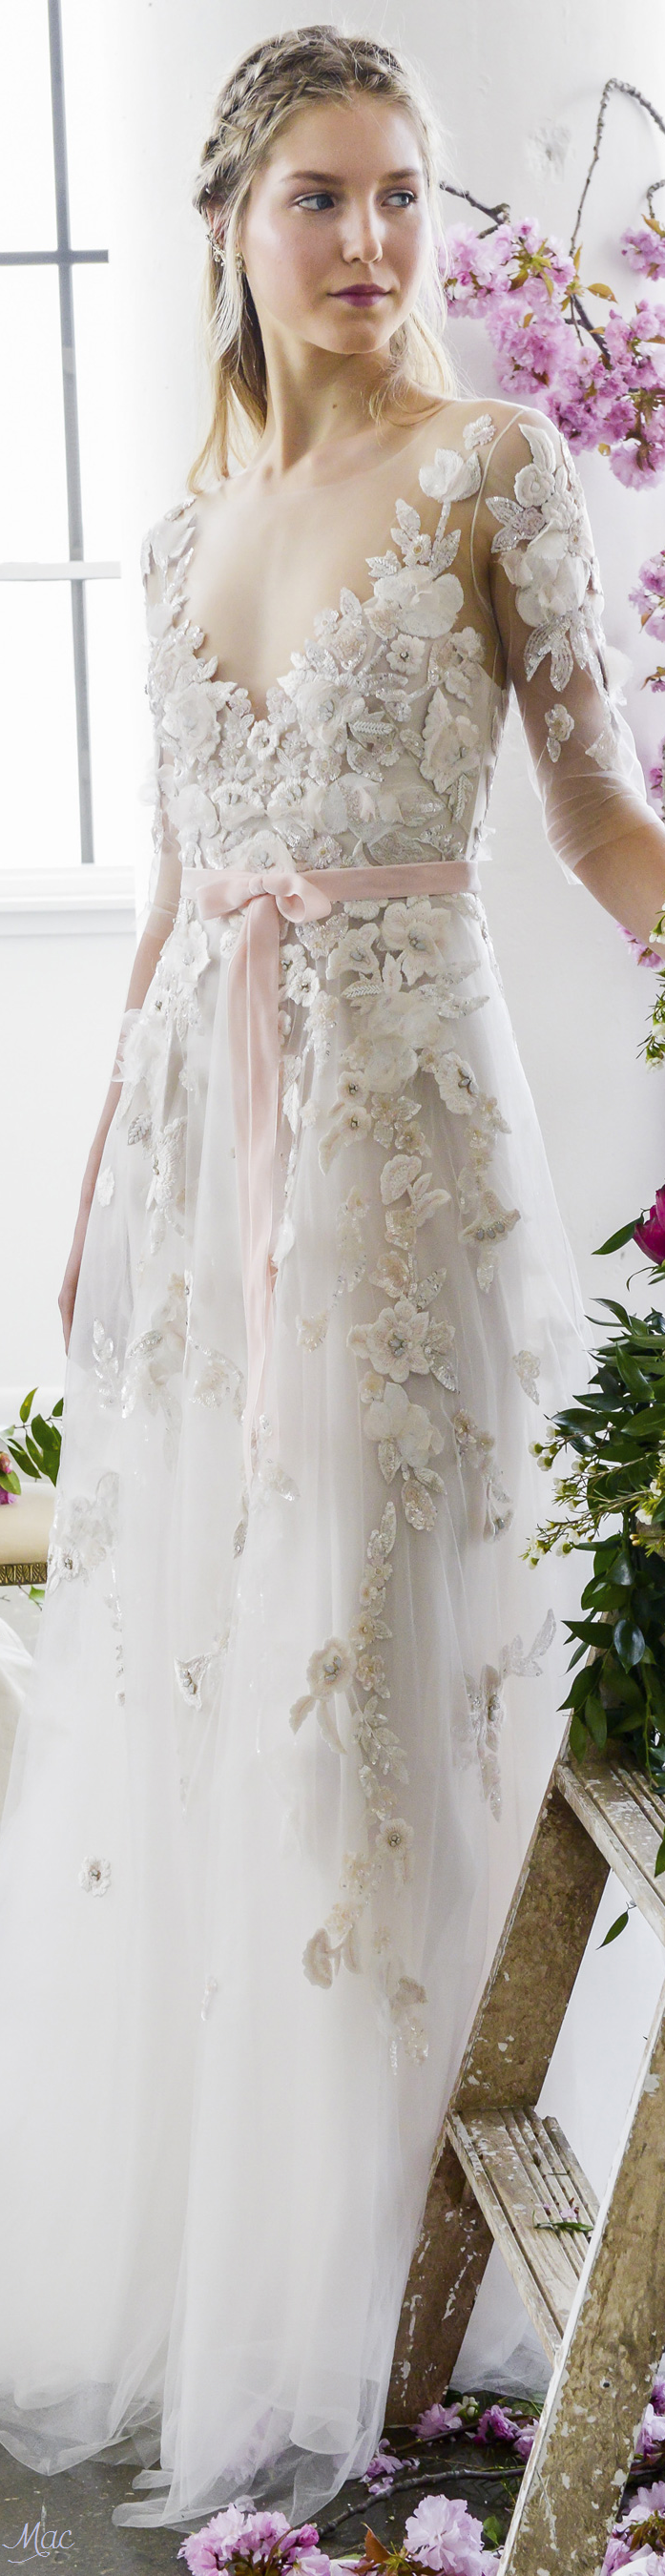 Spring marchesa notte boutique chic bridal gown chic